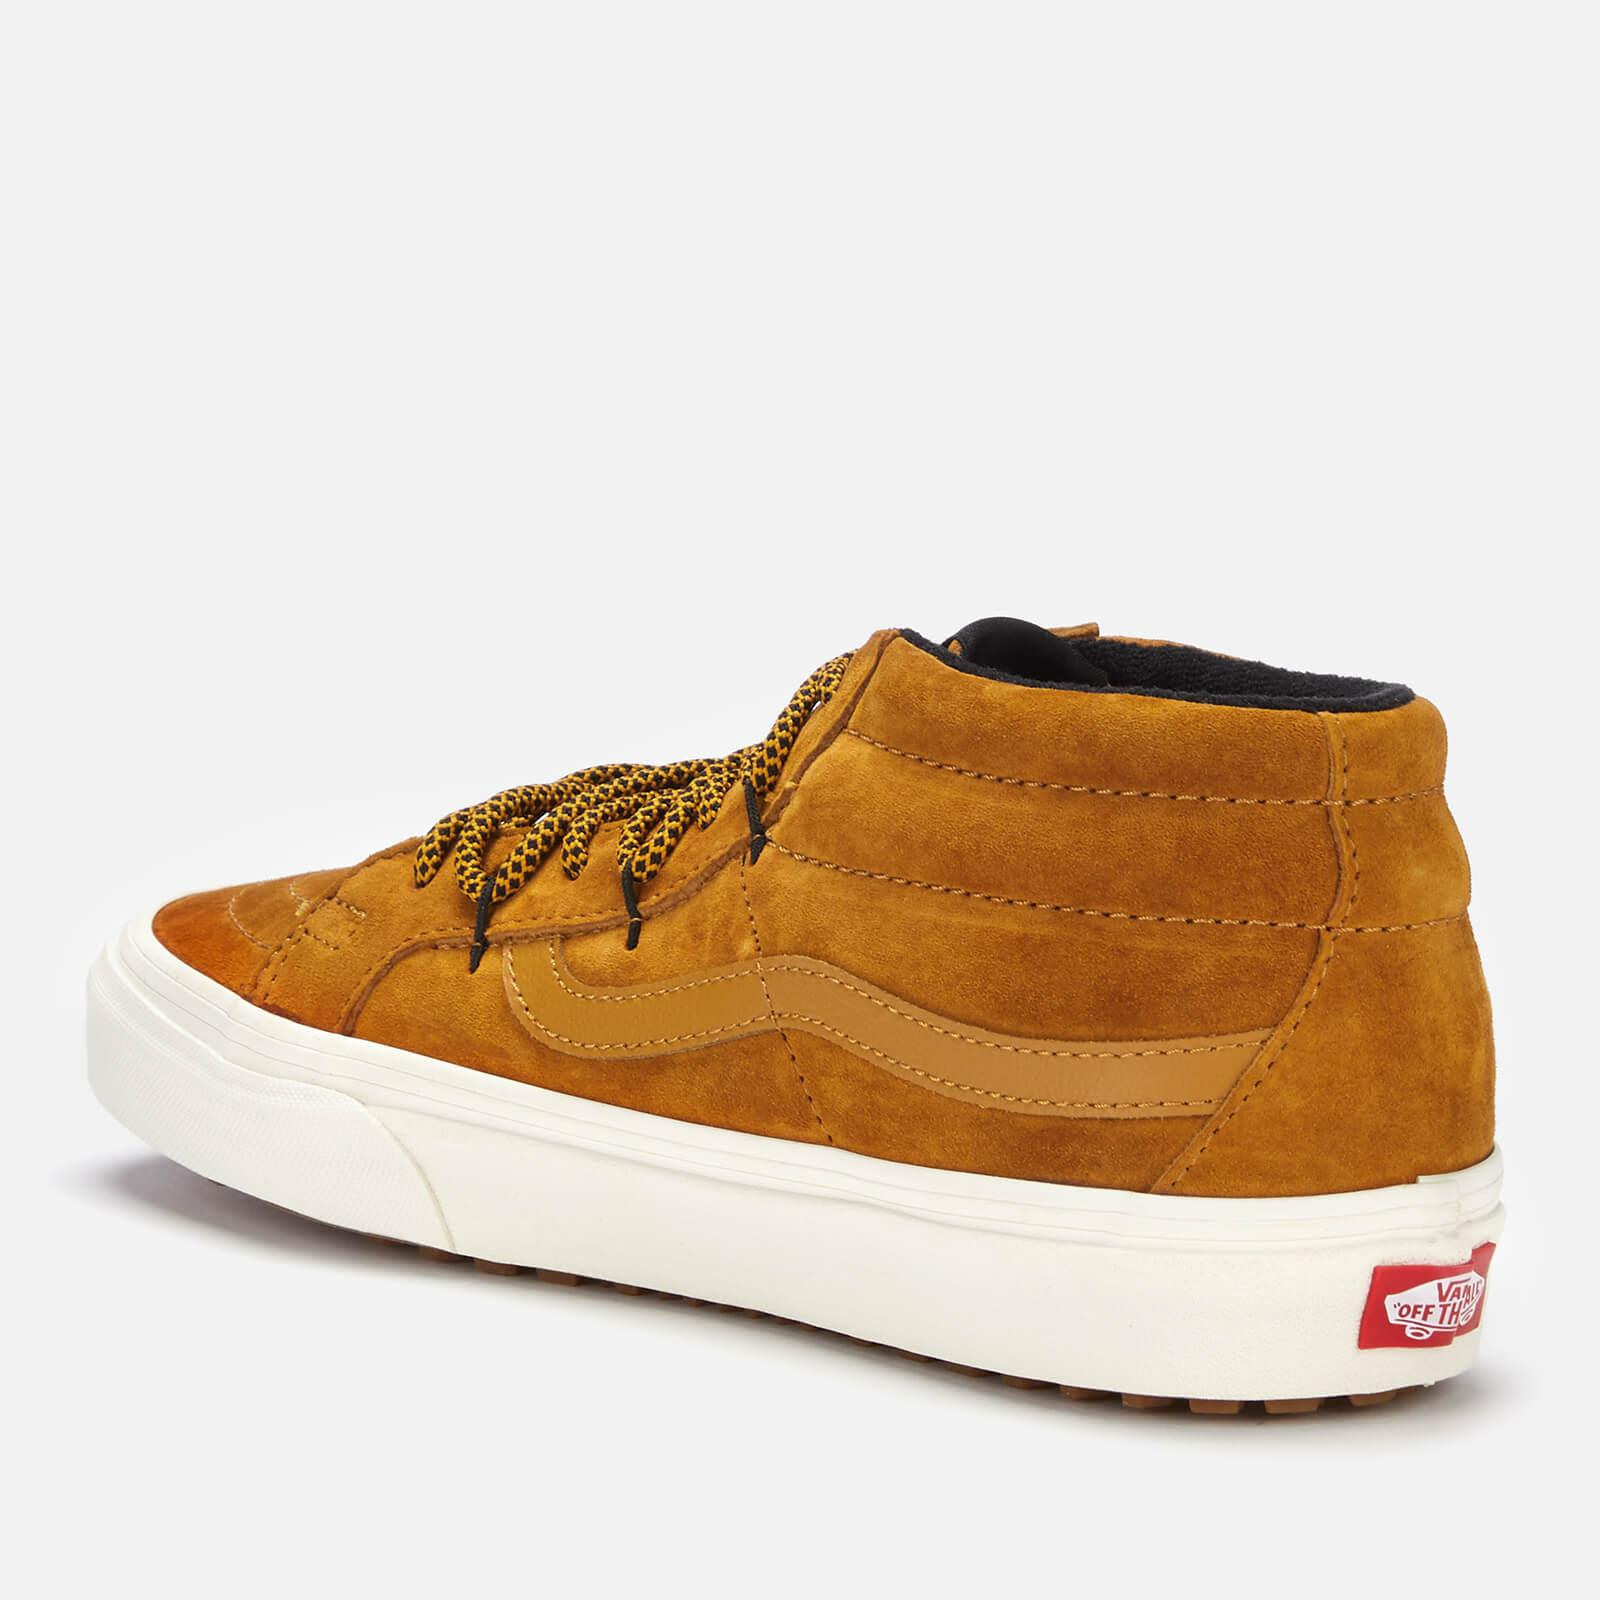 57767e660a8741 Vans - Brown Sk8-mid Reissue Ghillie Met Water Resistant Trainers for Men -  Lyst. View fullscreen